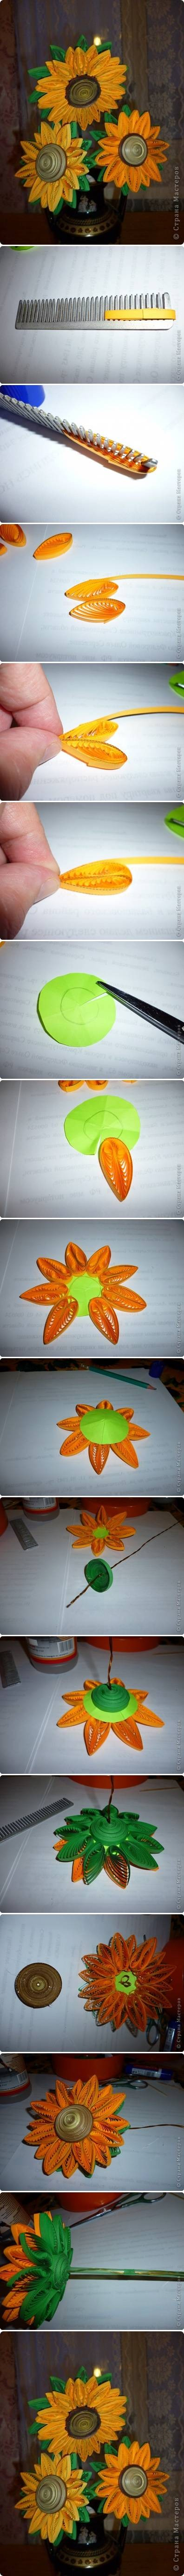 DIY-Quilling-Sunflower.jpg